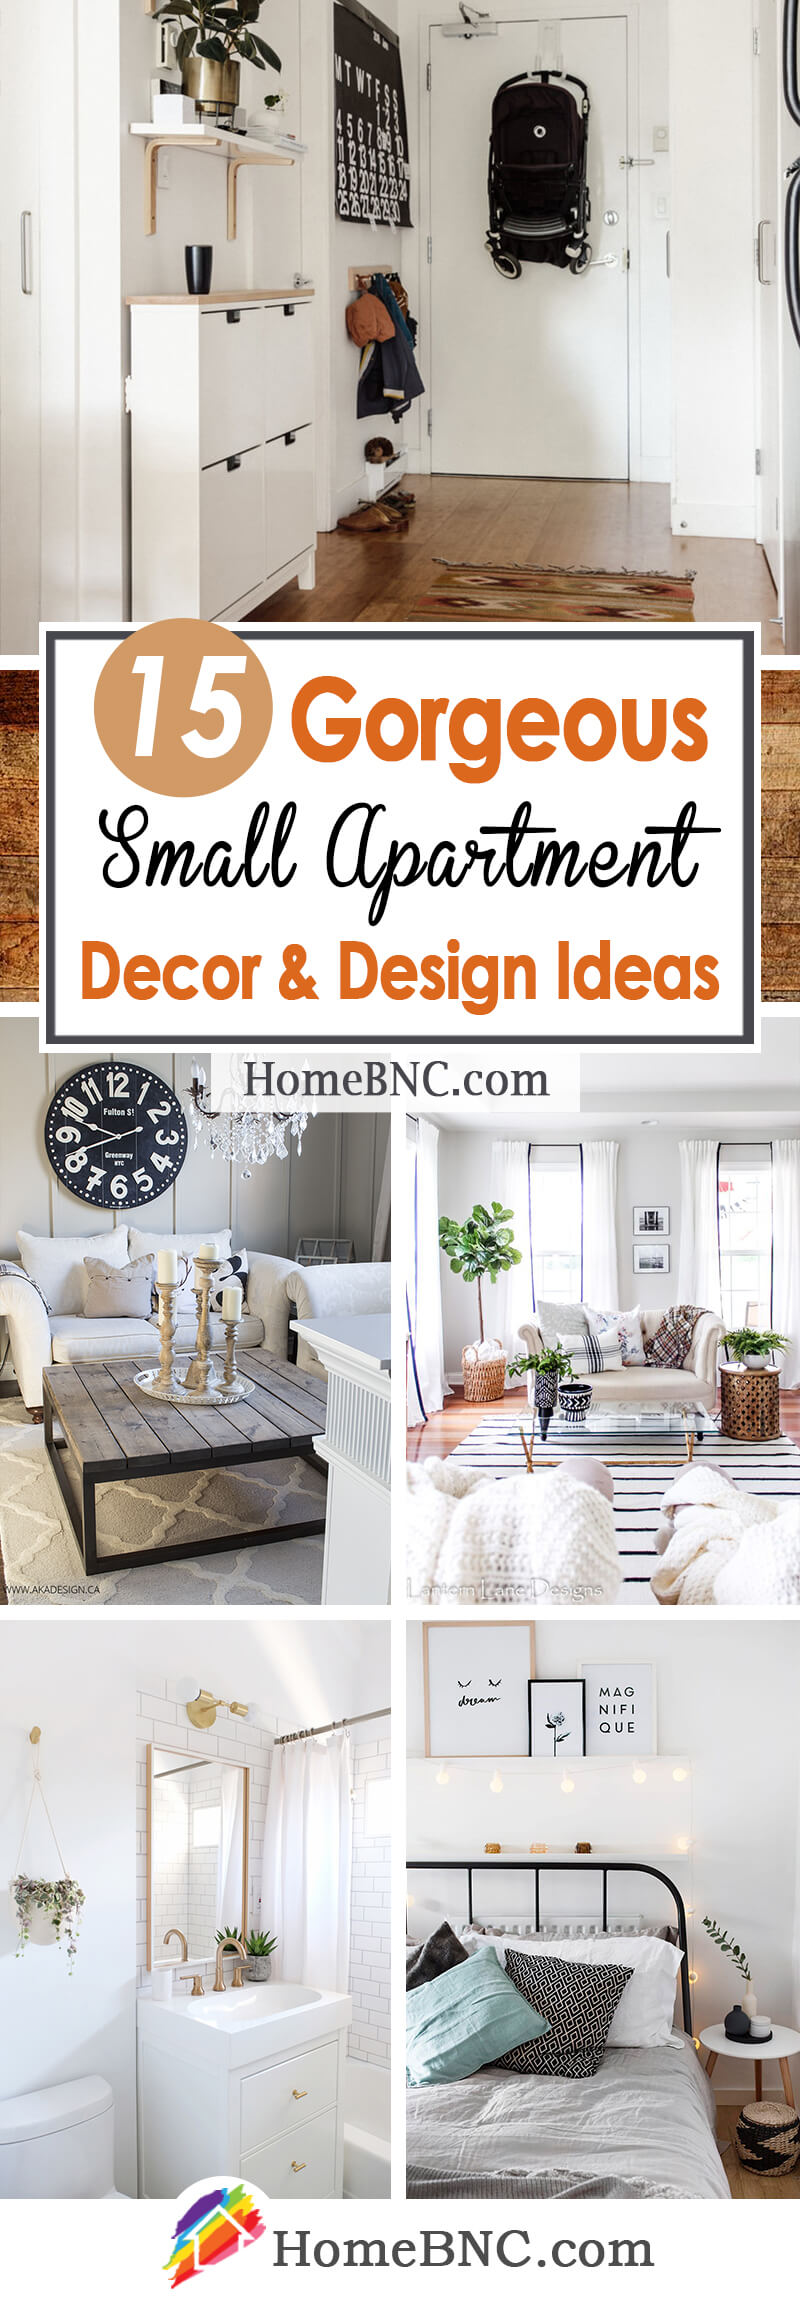 15 Best Small Apartment Decor And Design Ideas For 2020